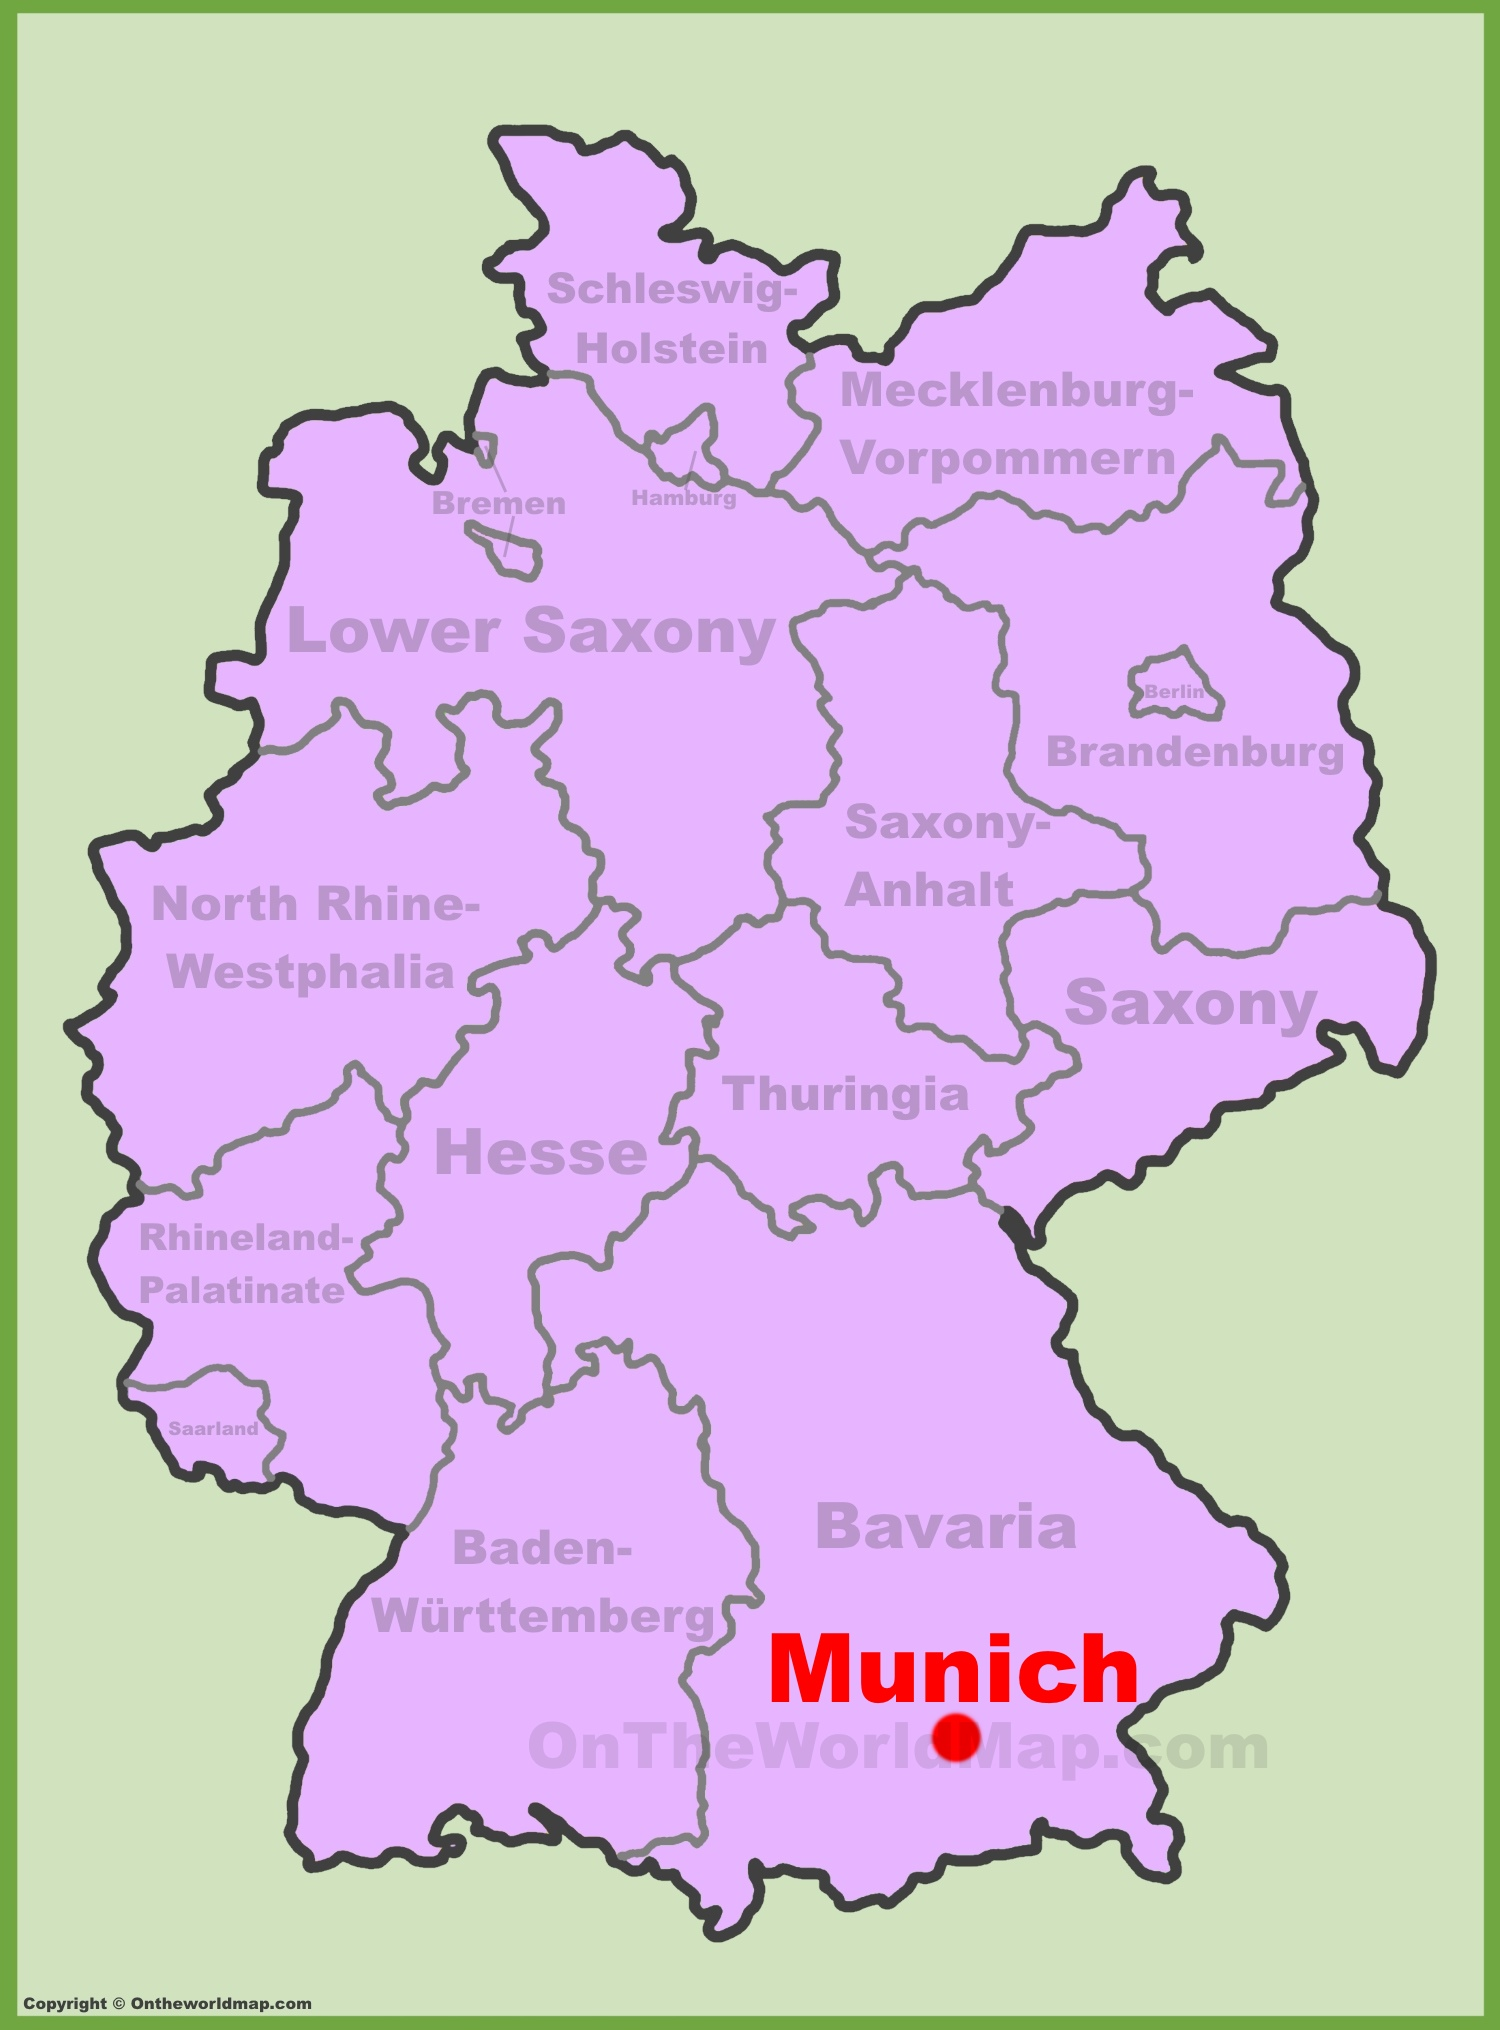 Munich Germany Map Munich Maps | Germany | Maps of Munich (München)